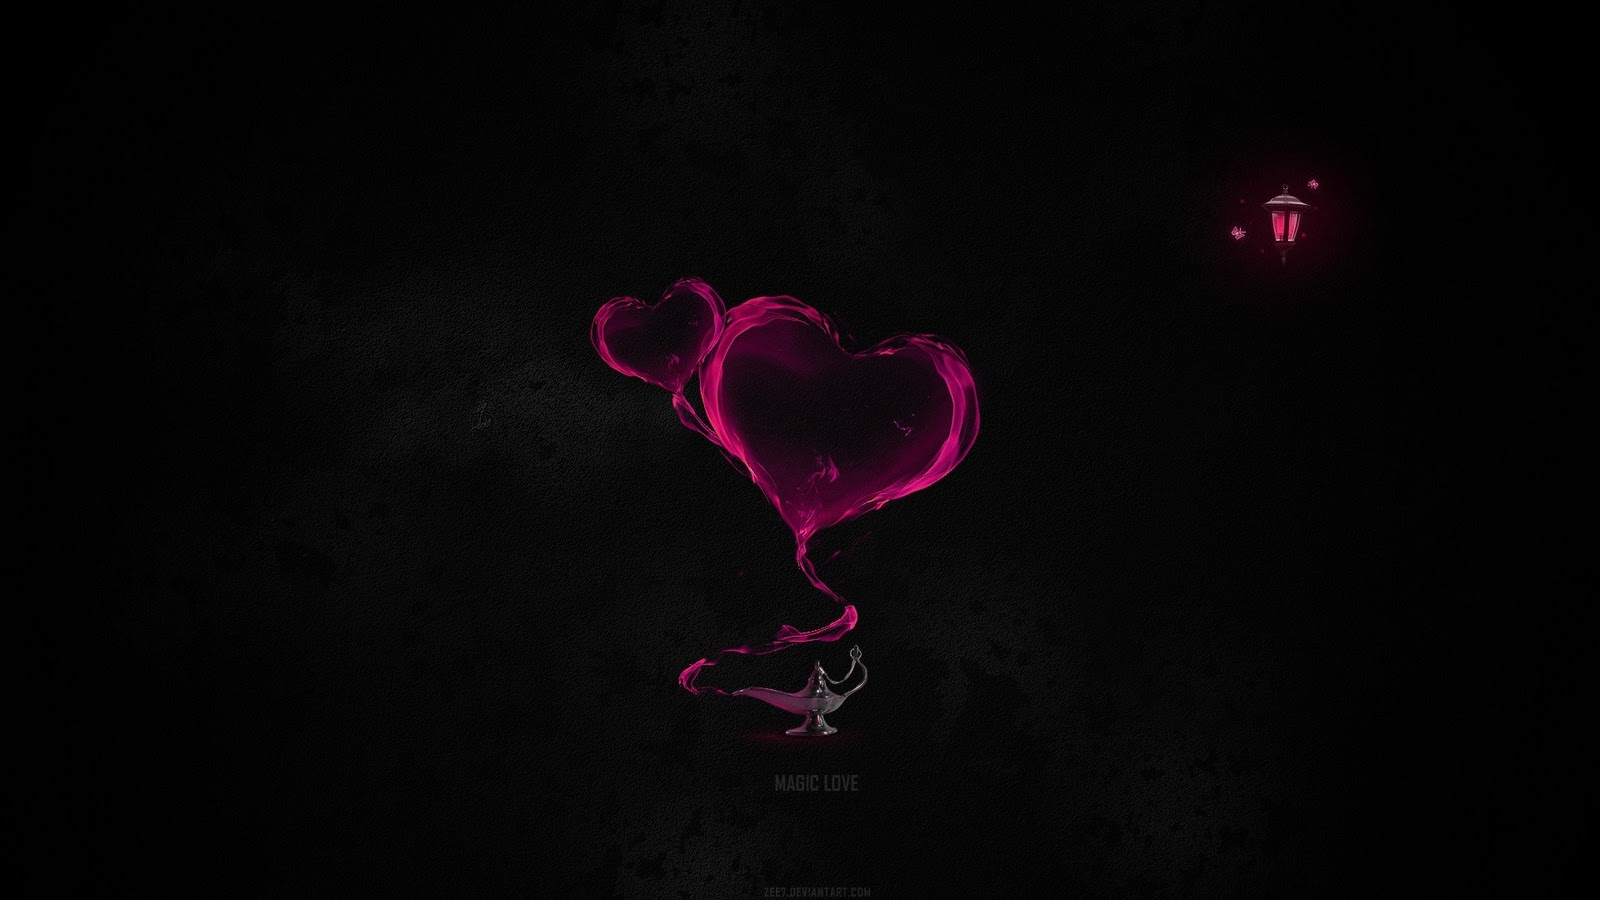 Love Wallpaper Hd computer : Free 3D Wallpapers Download: Love hd wallpaper, love wallpaper hd